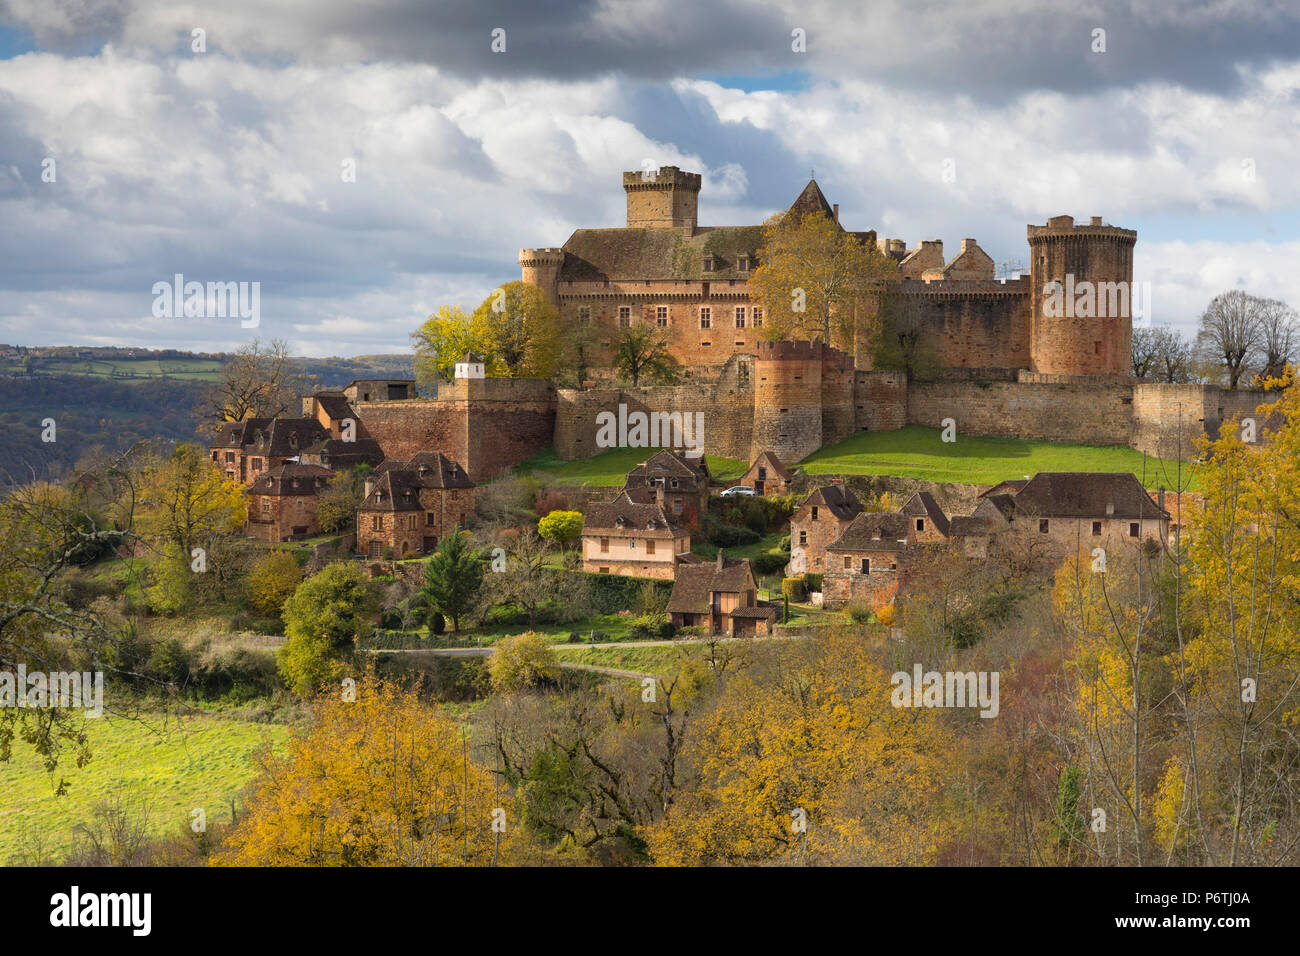 Castelnau-Bretenoux in the autumn, Lot, Midi-Pyrenees, France - Stock Image